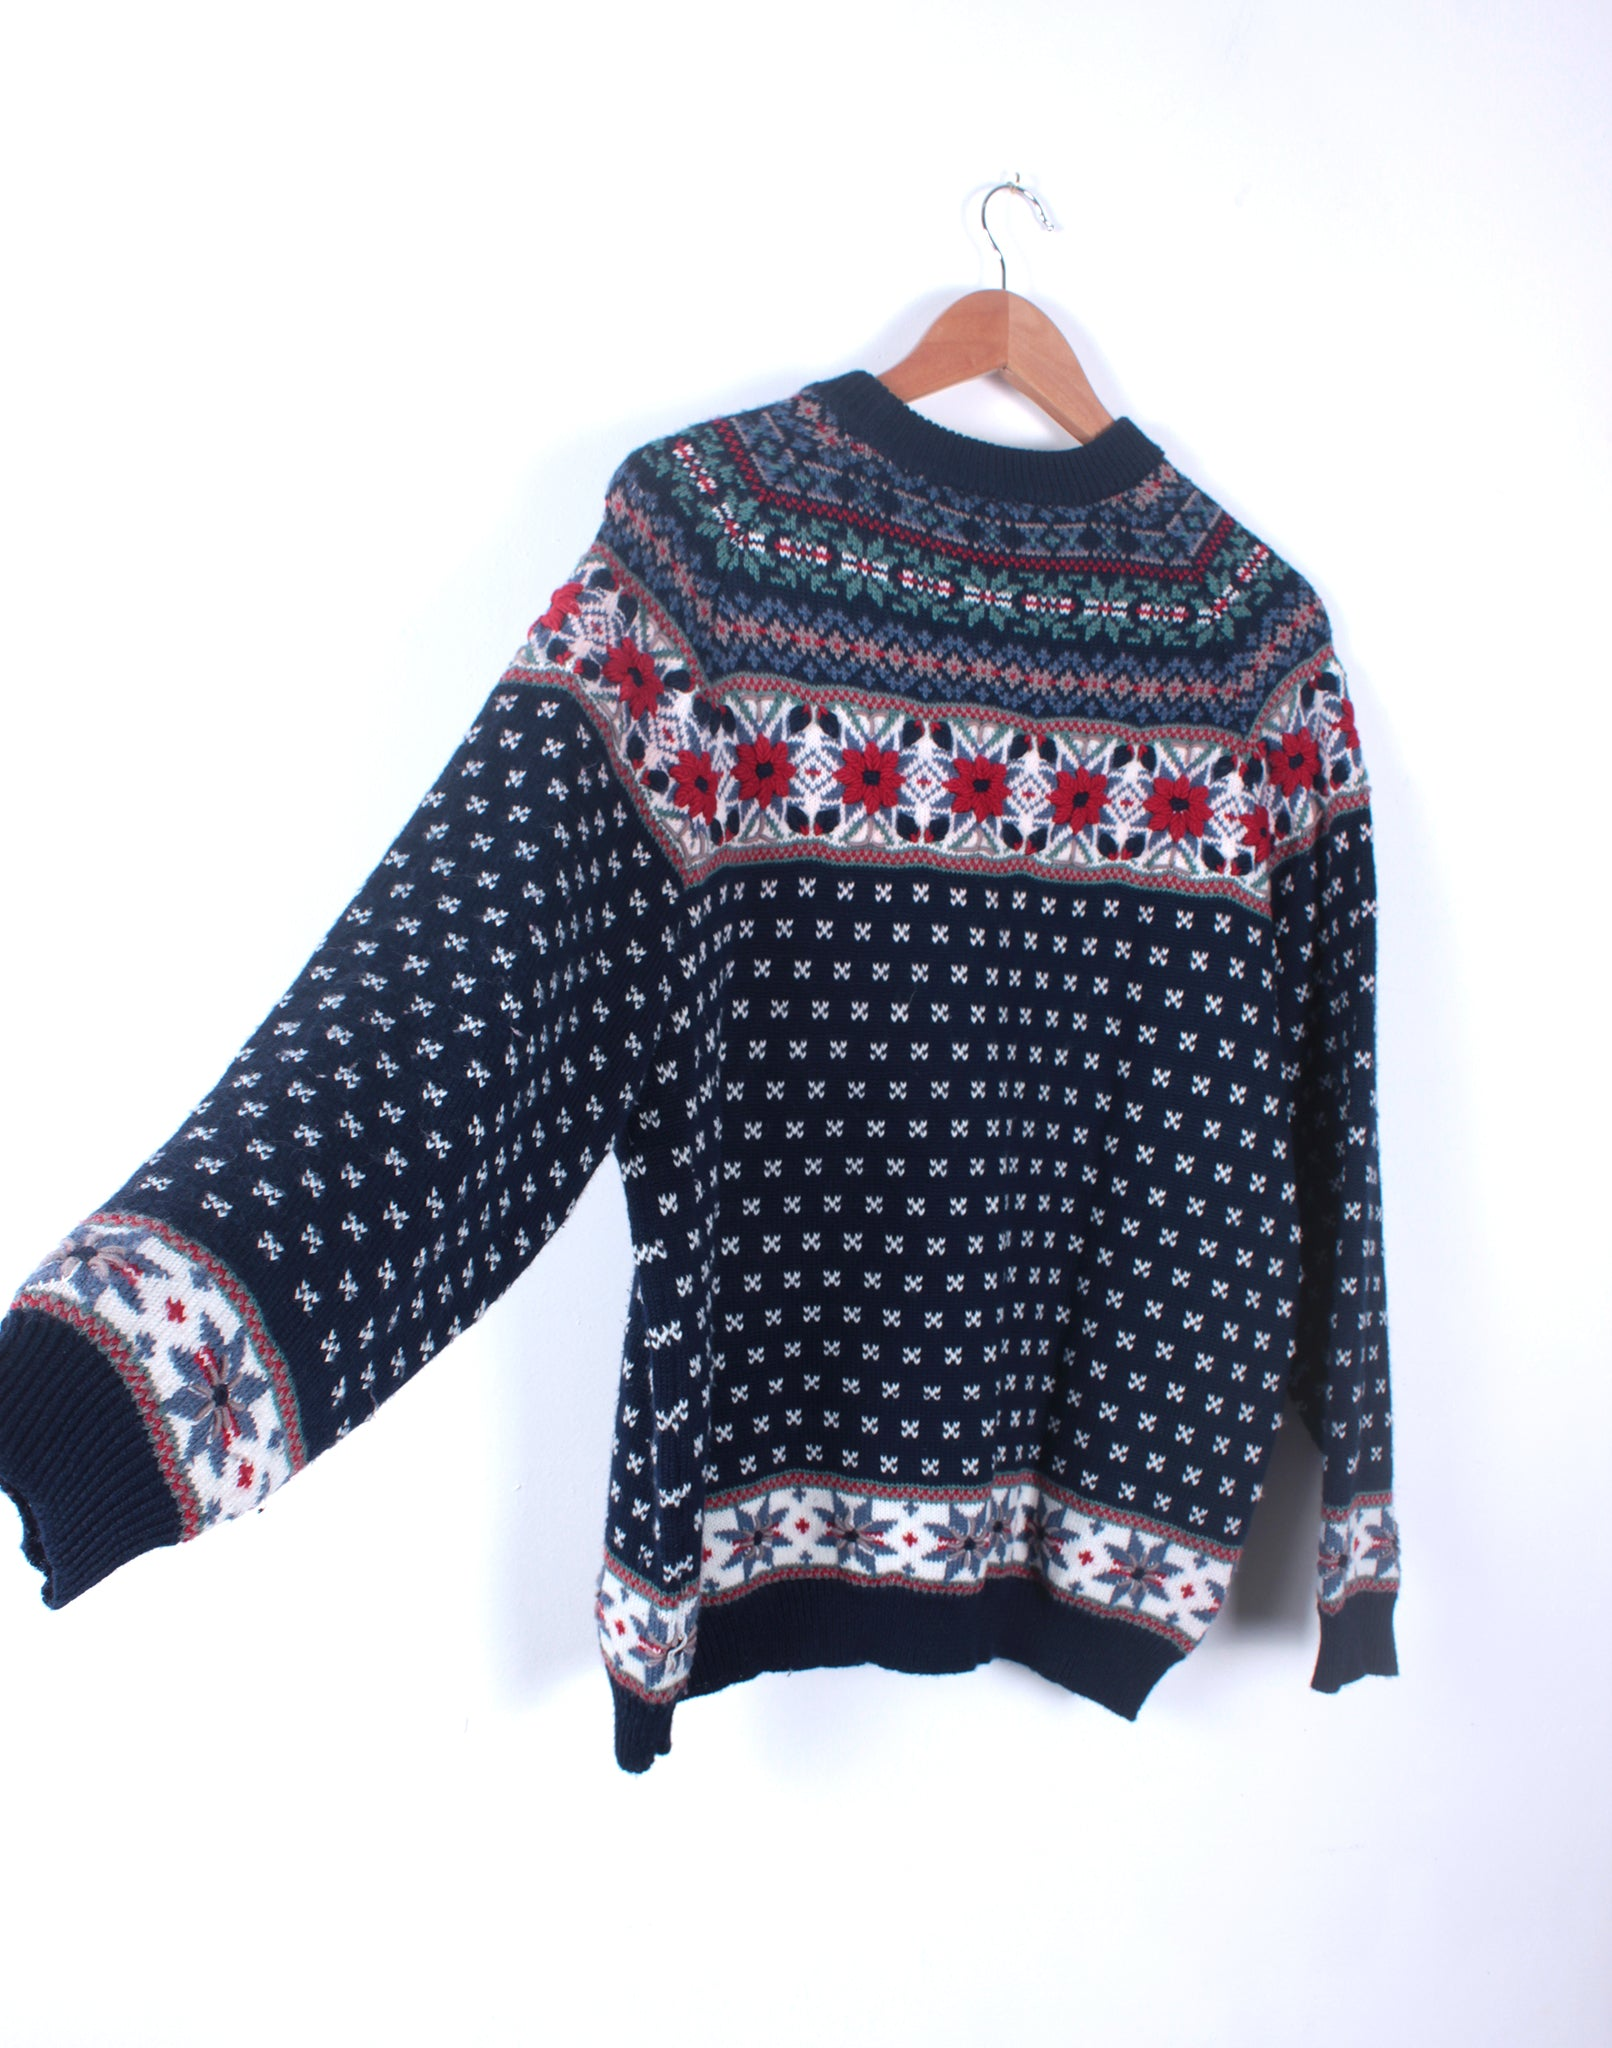 Vintage 80's Katies Navy Embroidered Jumper